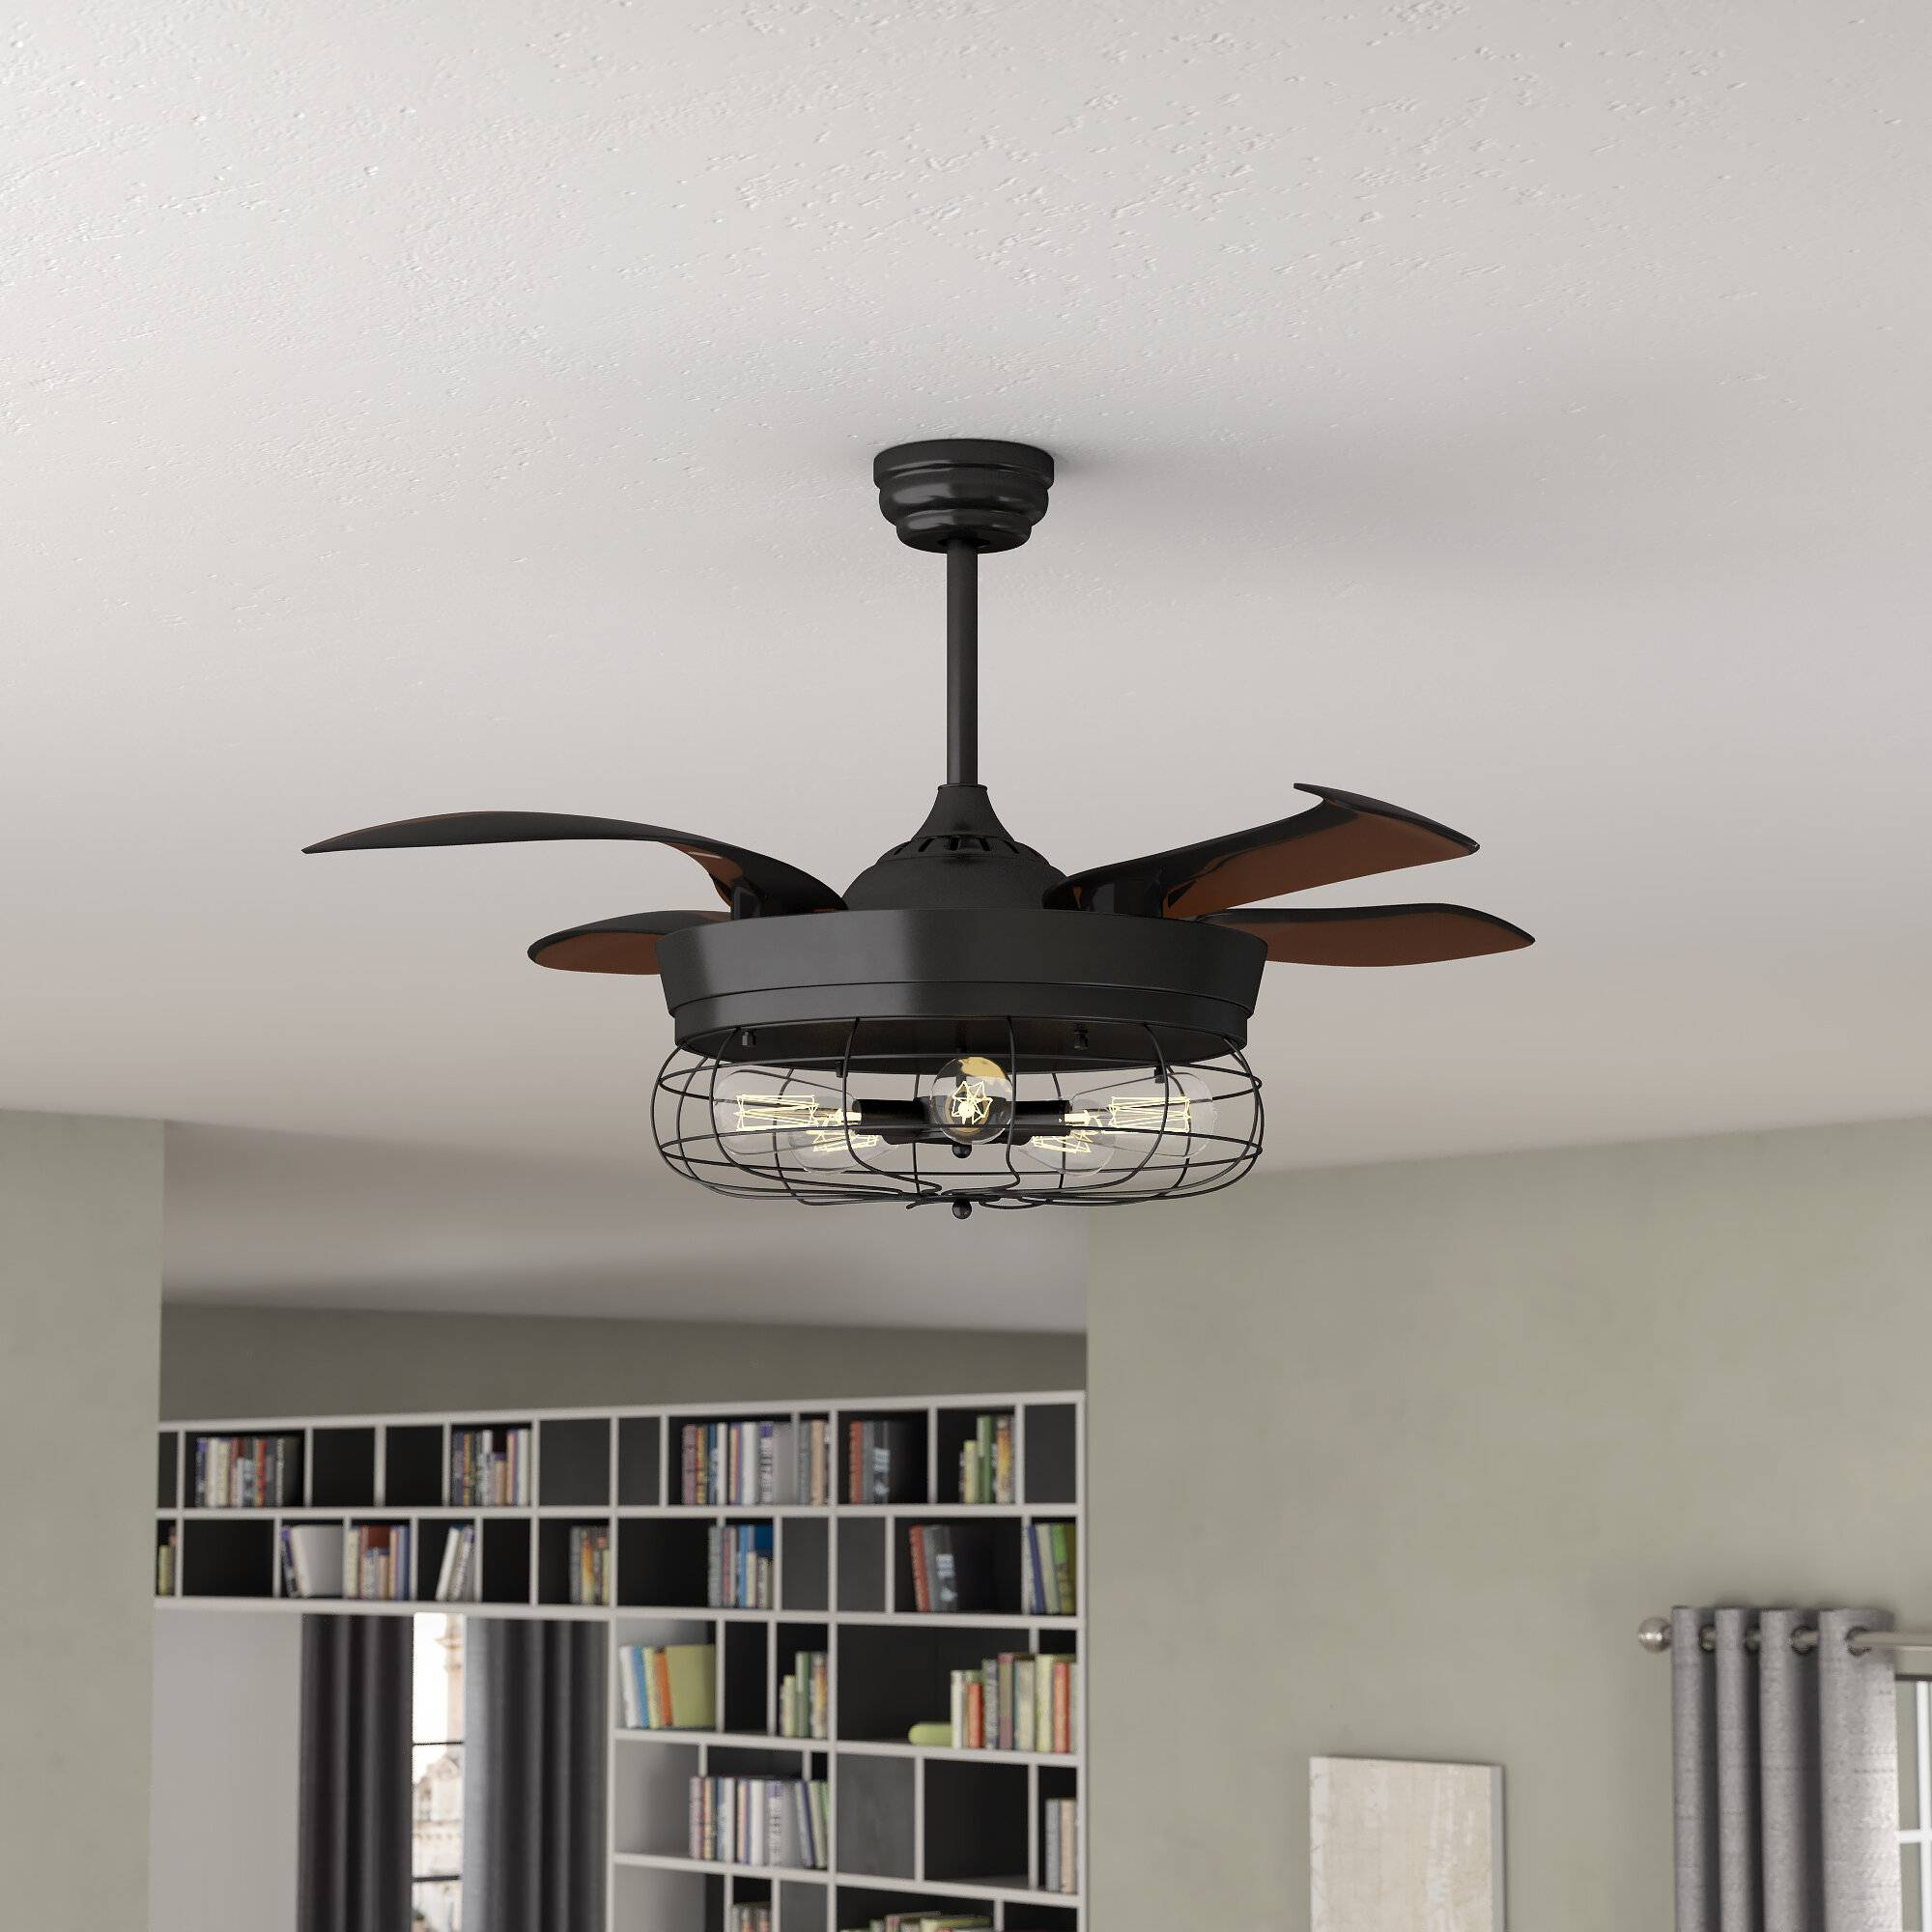 46 benally 4 blade ceiling fan with remote light kit included